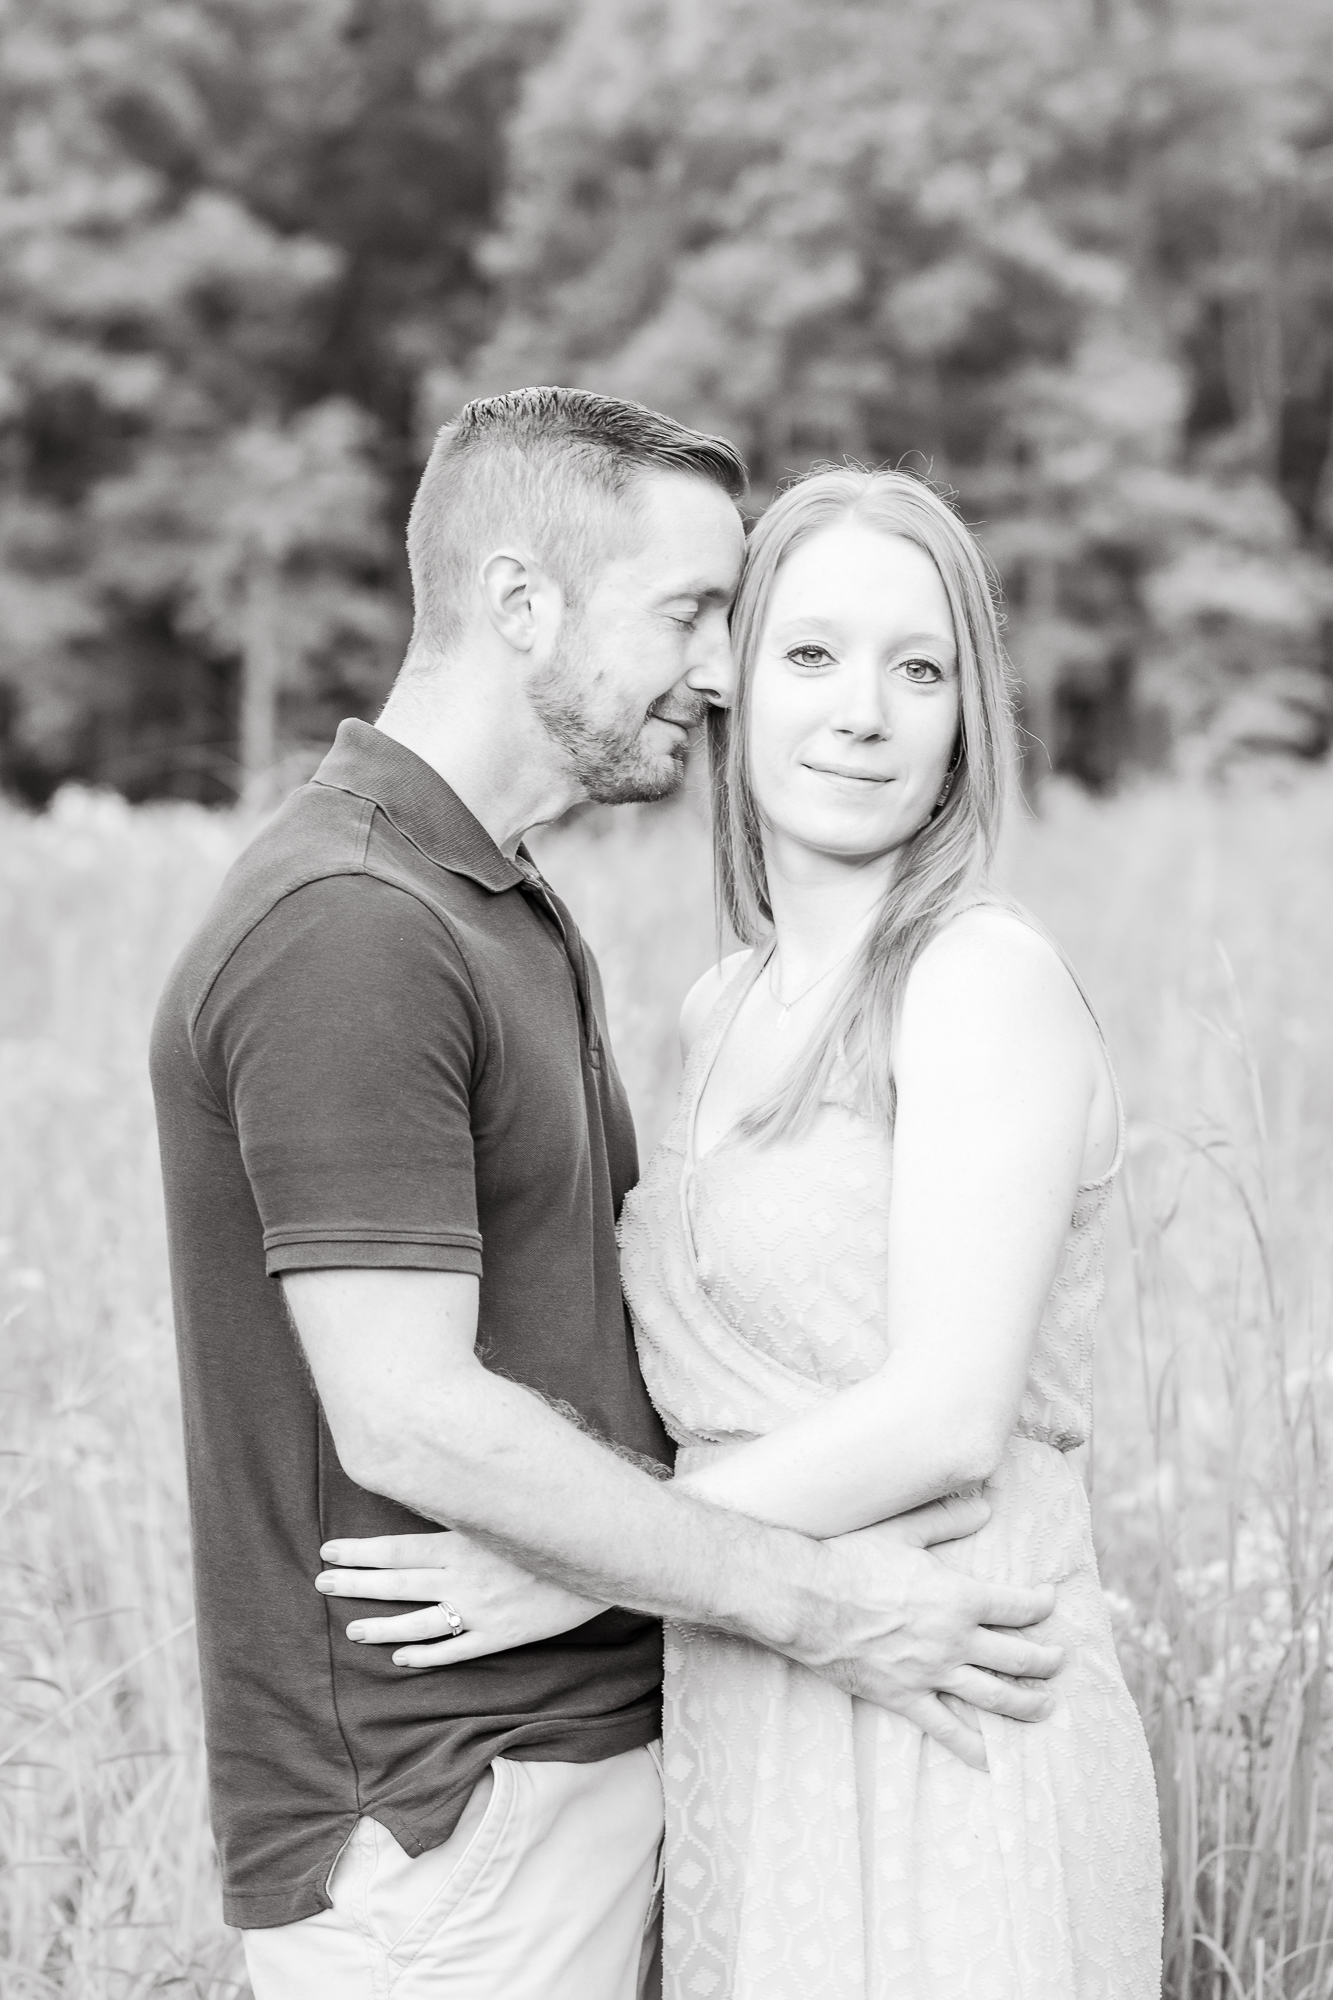 AB Favorites_Katy+Brian_Engagement Session_Brecksville Reservation_Brecksville_Ohio-49.jpg